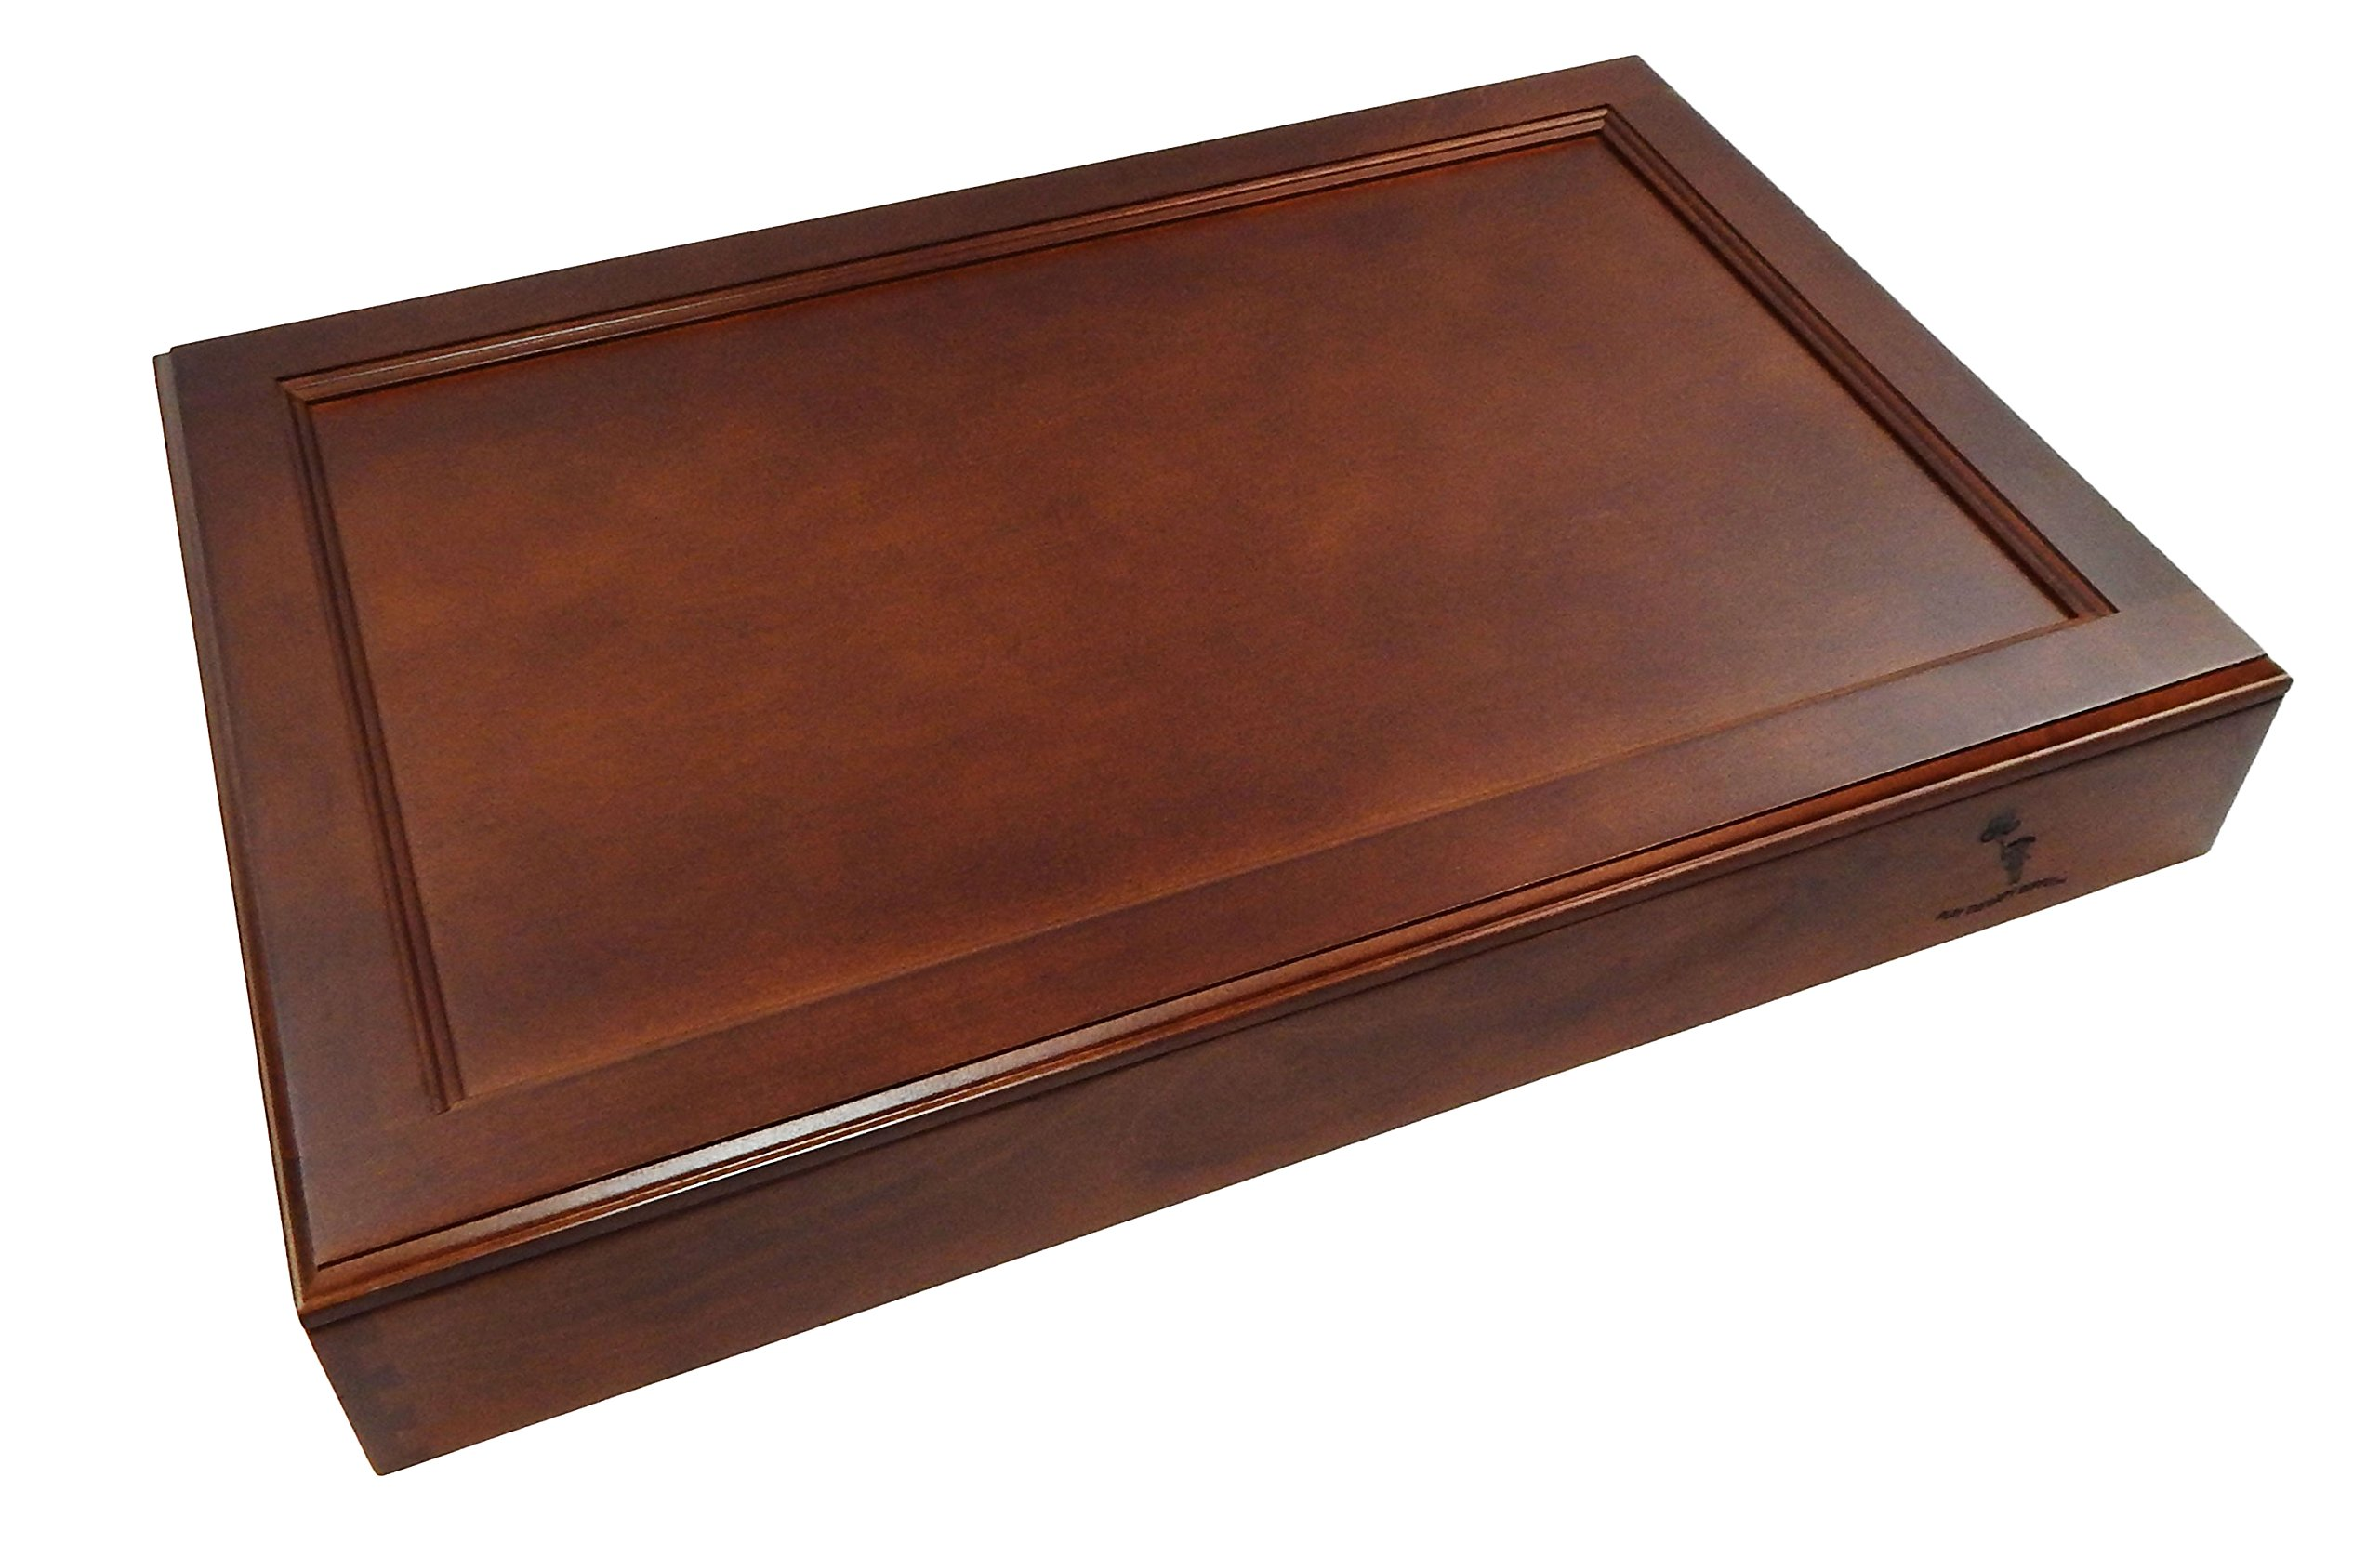 Play Therapy Supply Premium Wooden Sandtray with Lid by PlayTherapySupply (Image #2)